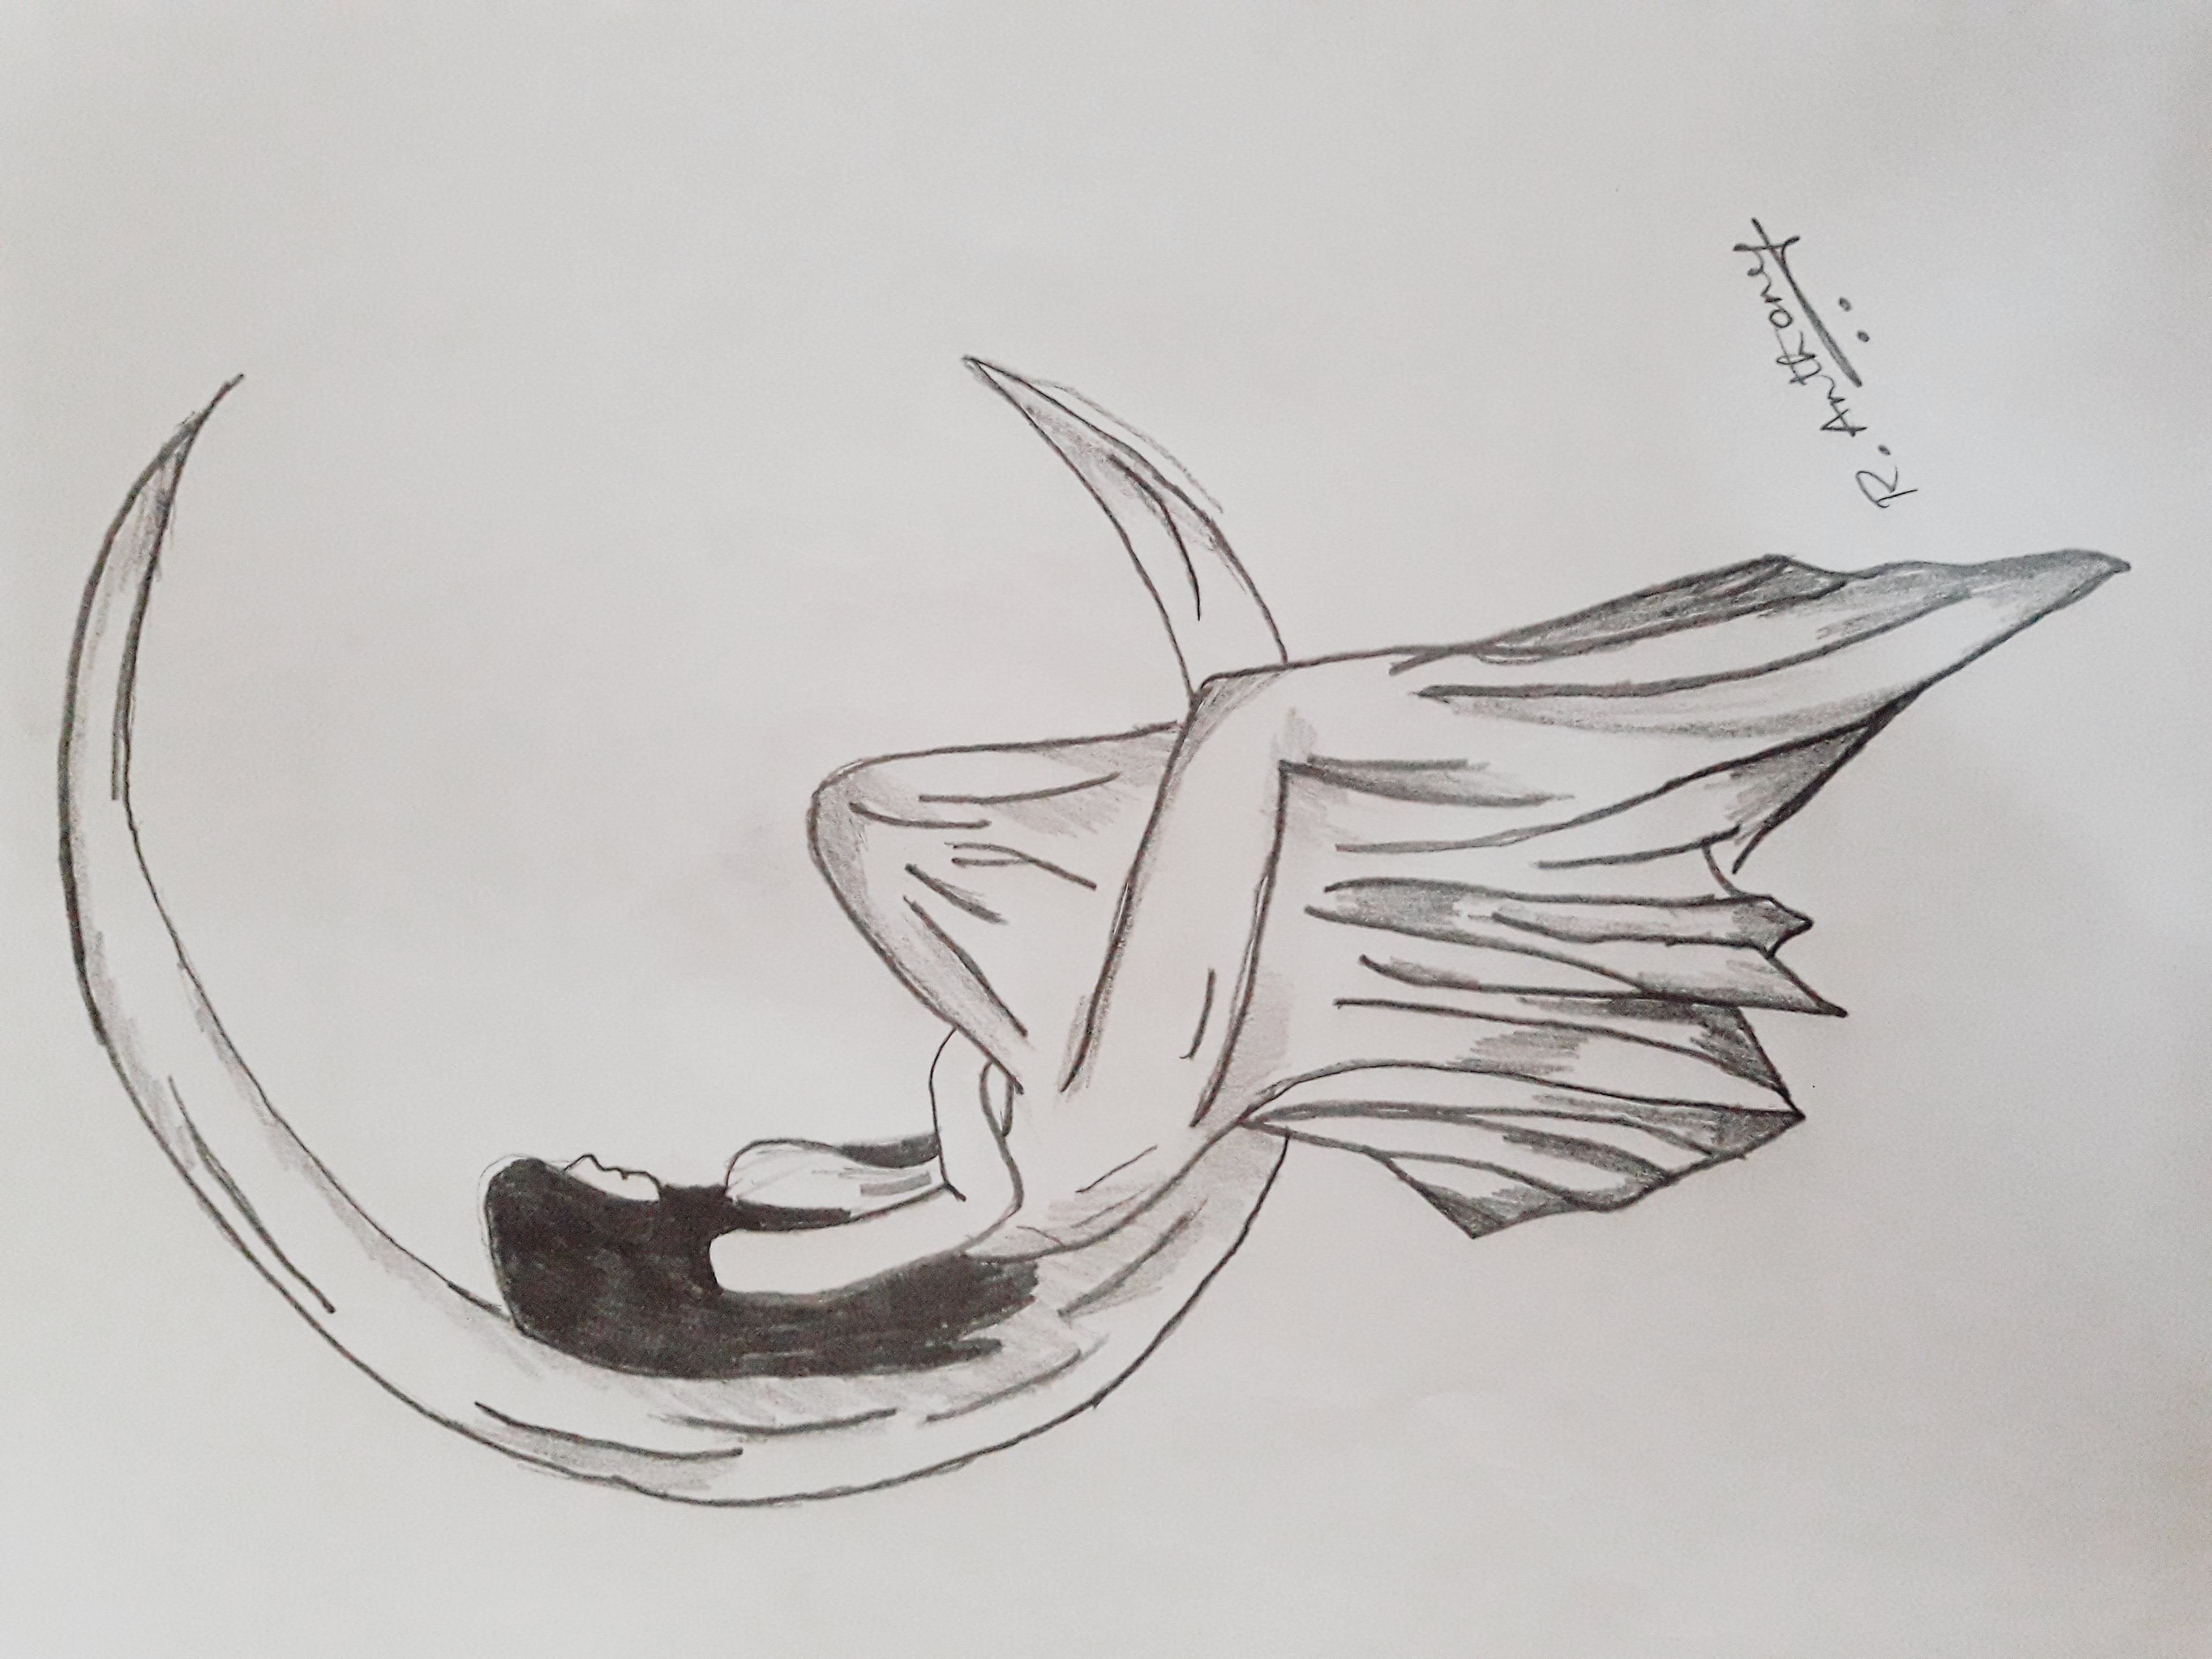 Reshab's Sketch 'The Lost Girl'